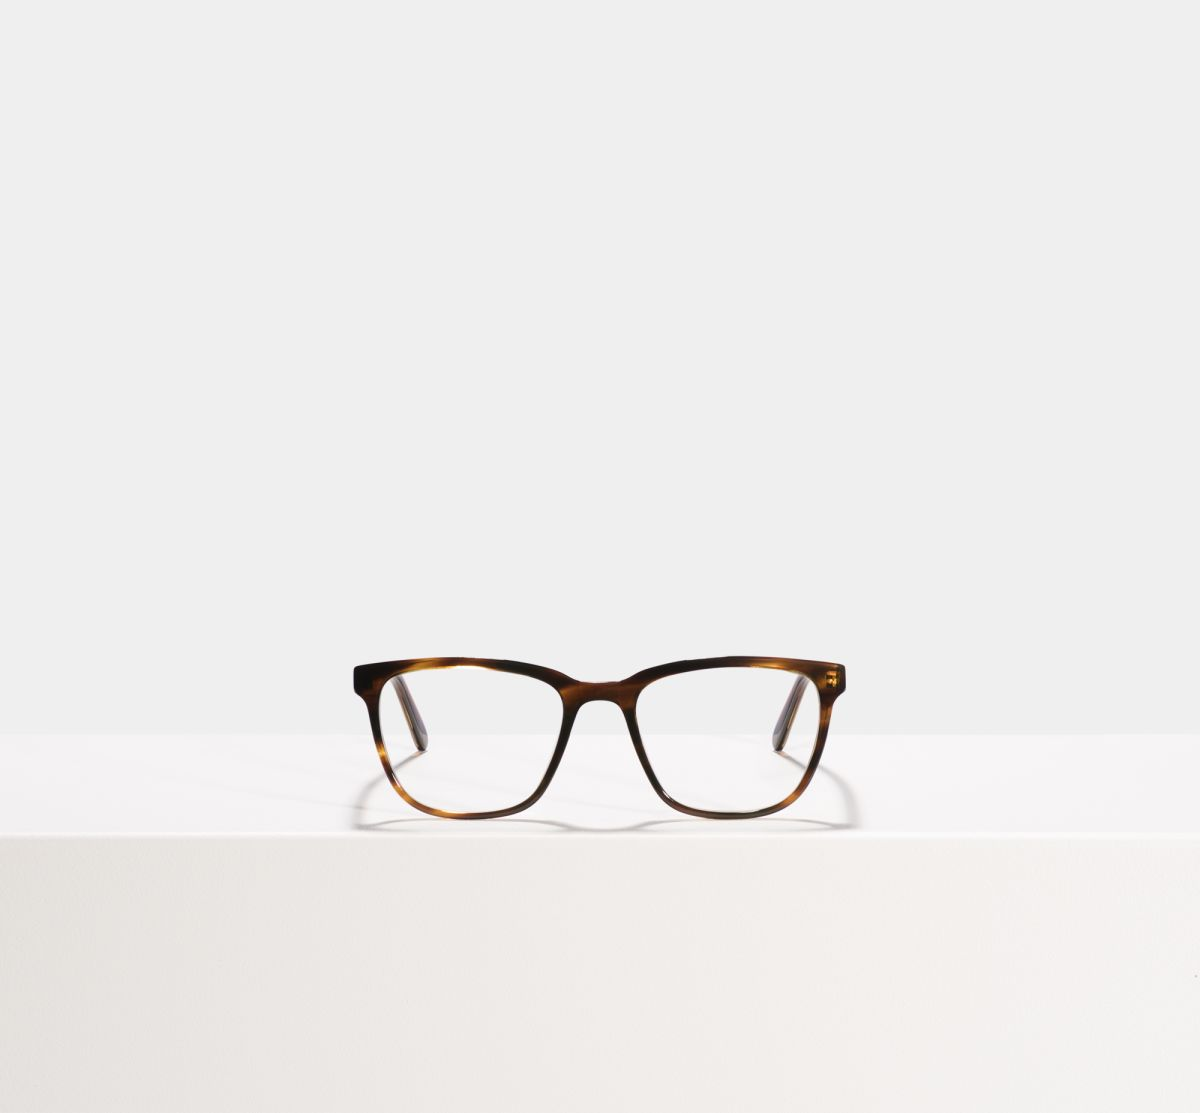 Cash square acetate glasses in Tiger Wood by Ace & Tate